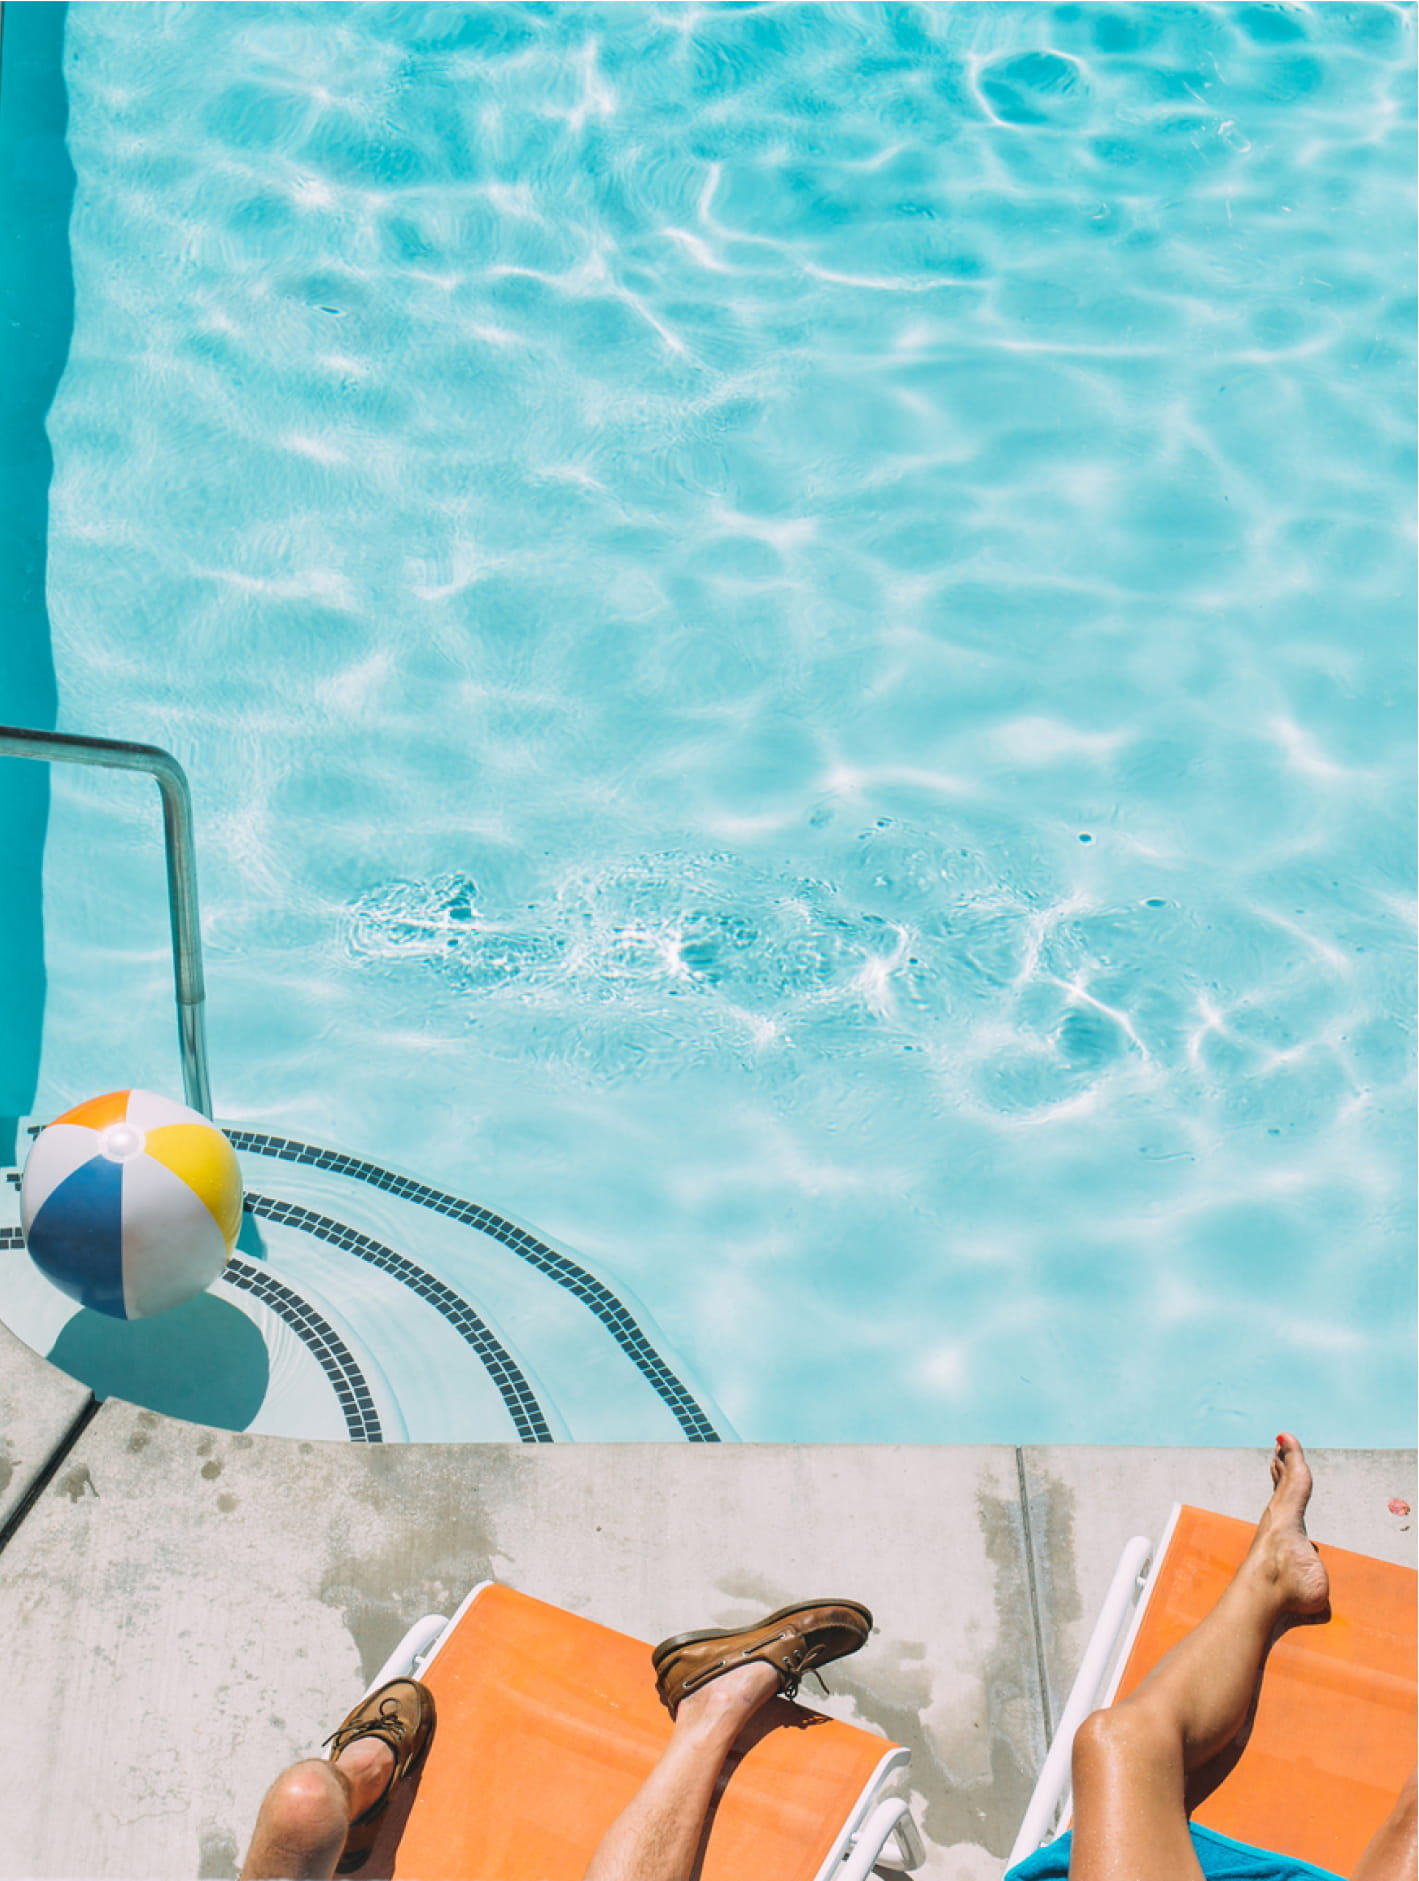 Outlook Good. - At Glendale Express, we have a bar and a pool and a bed that basically makes itself. We've got all your essentials covered, so being here really means you're not there.